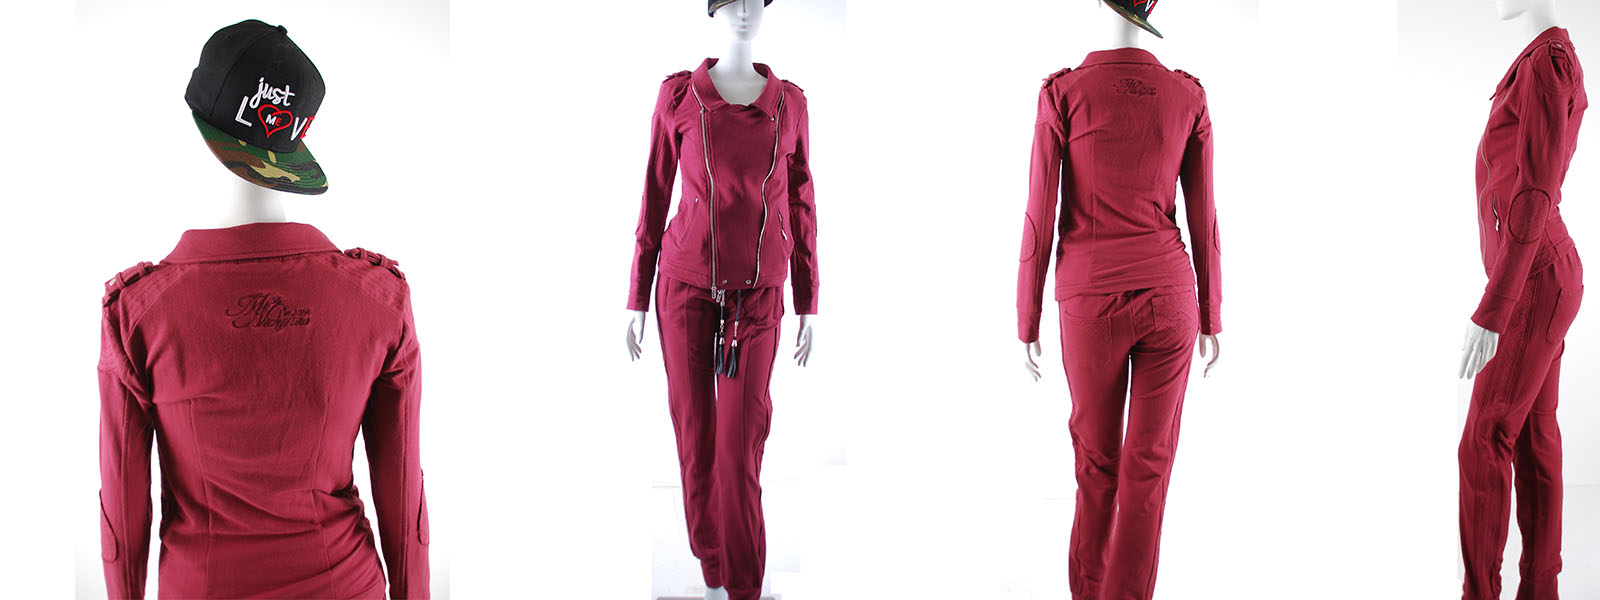 Nickelson tracksuit stocklot